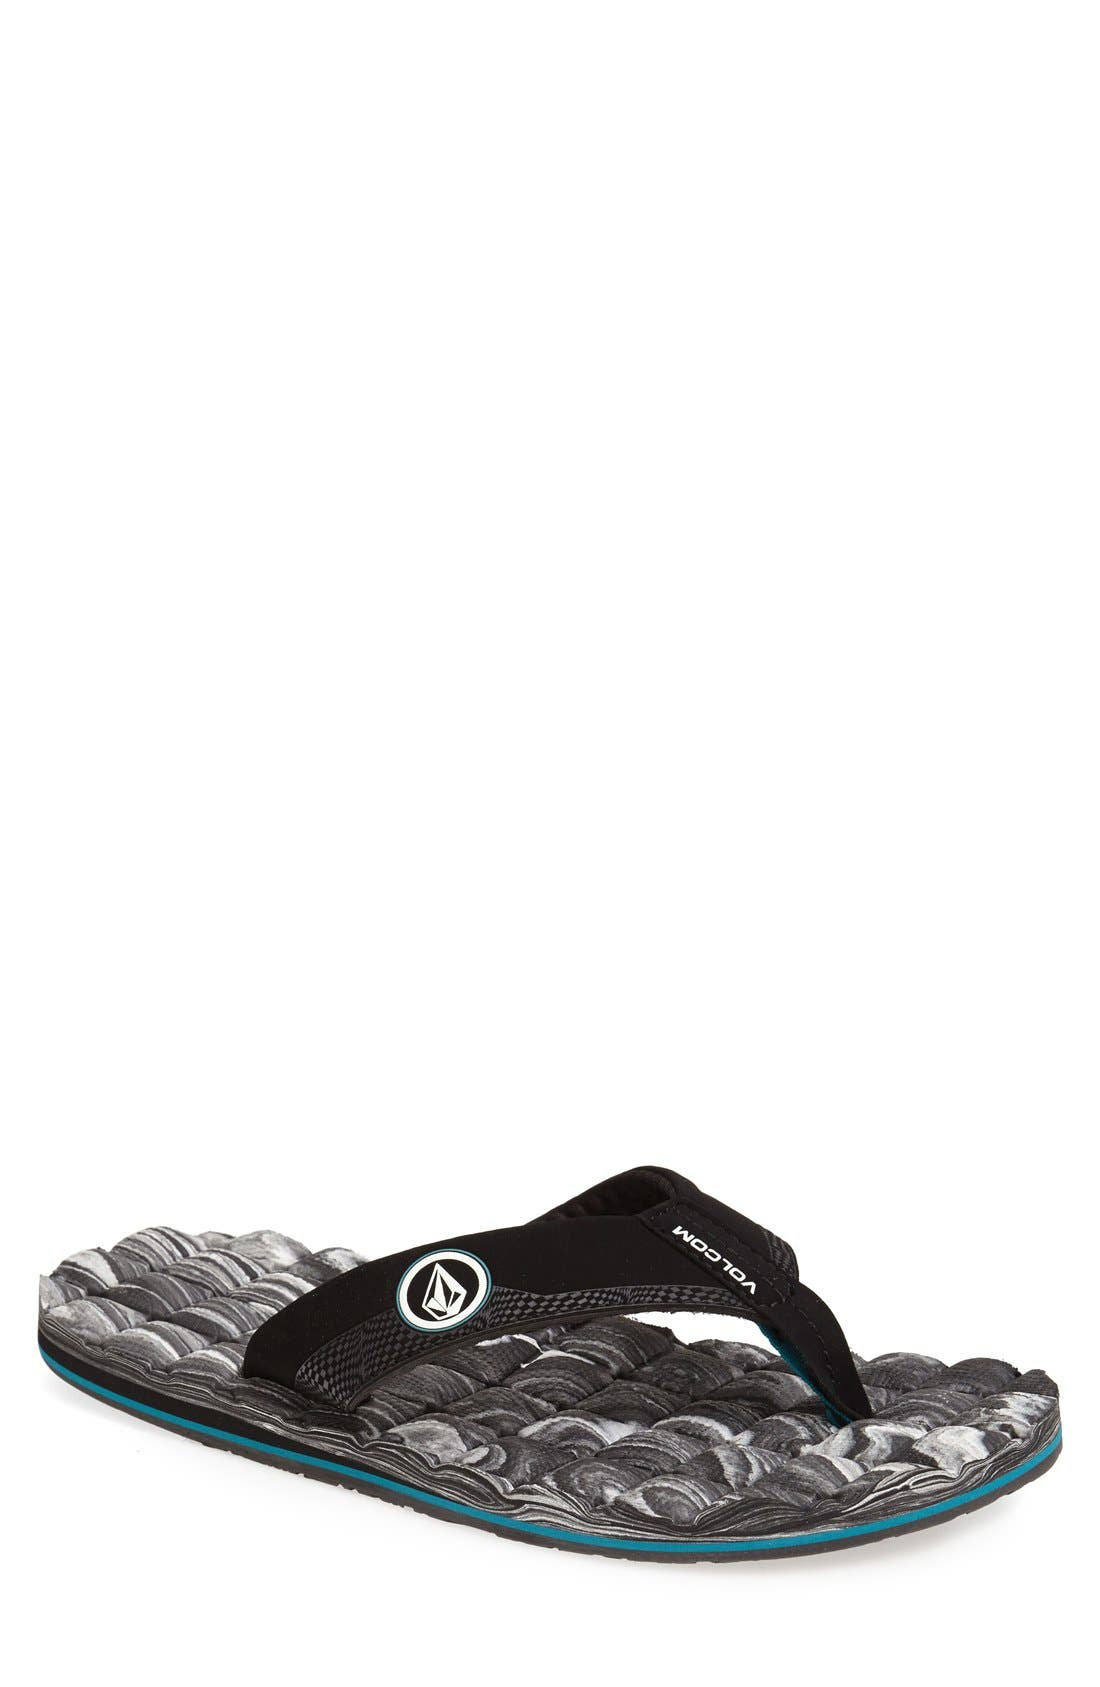 Alternate Image 1 Selected - Volcom 'Recliner' Flip Flop (Men)